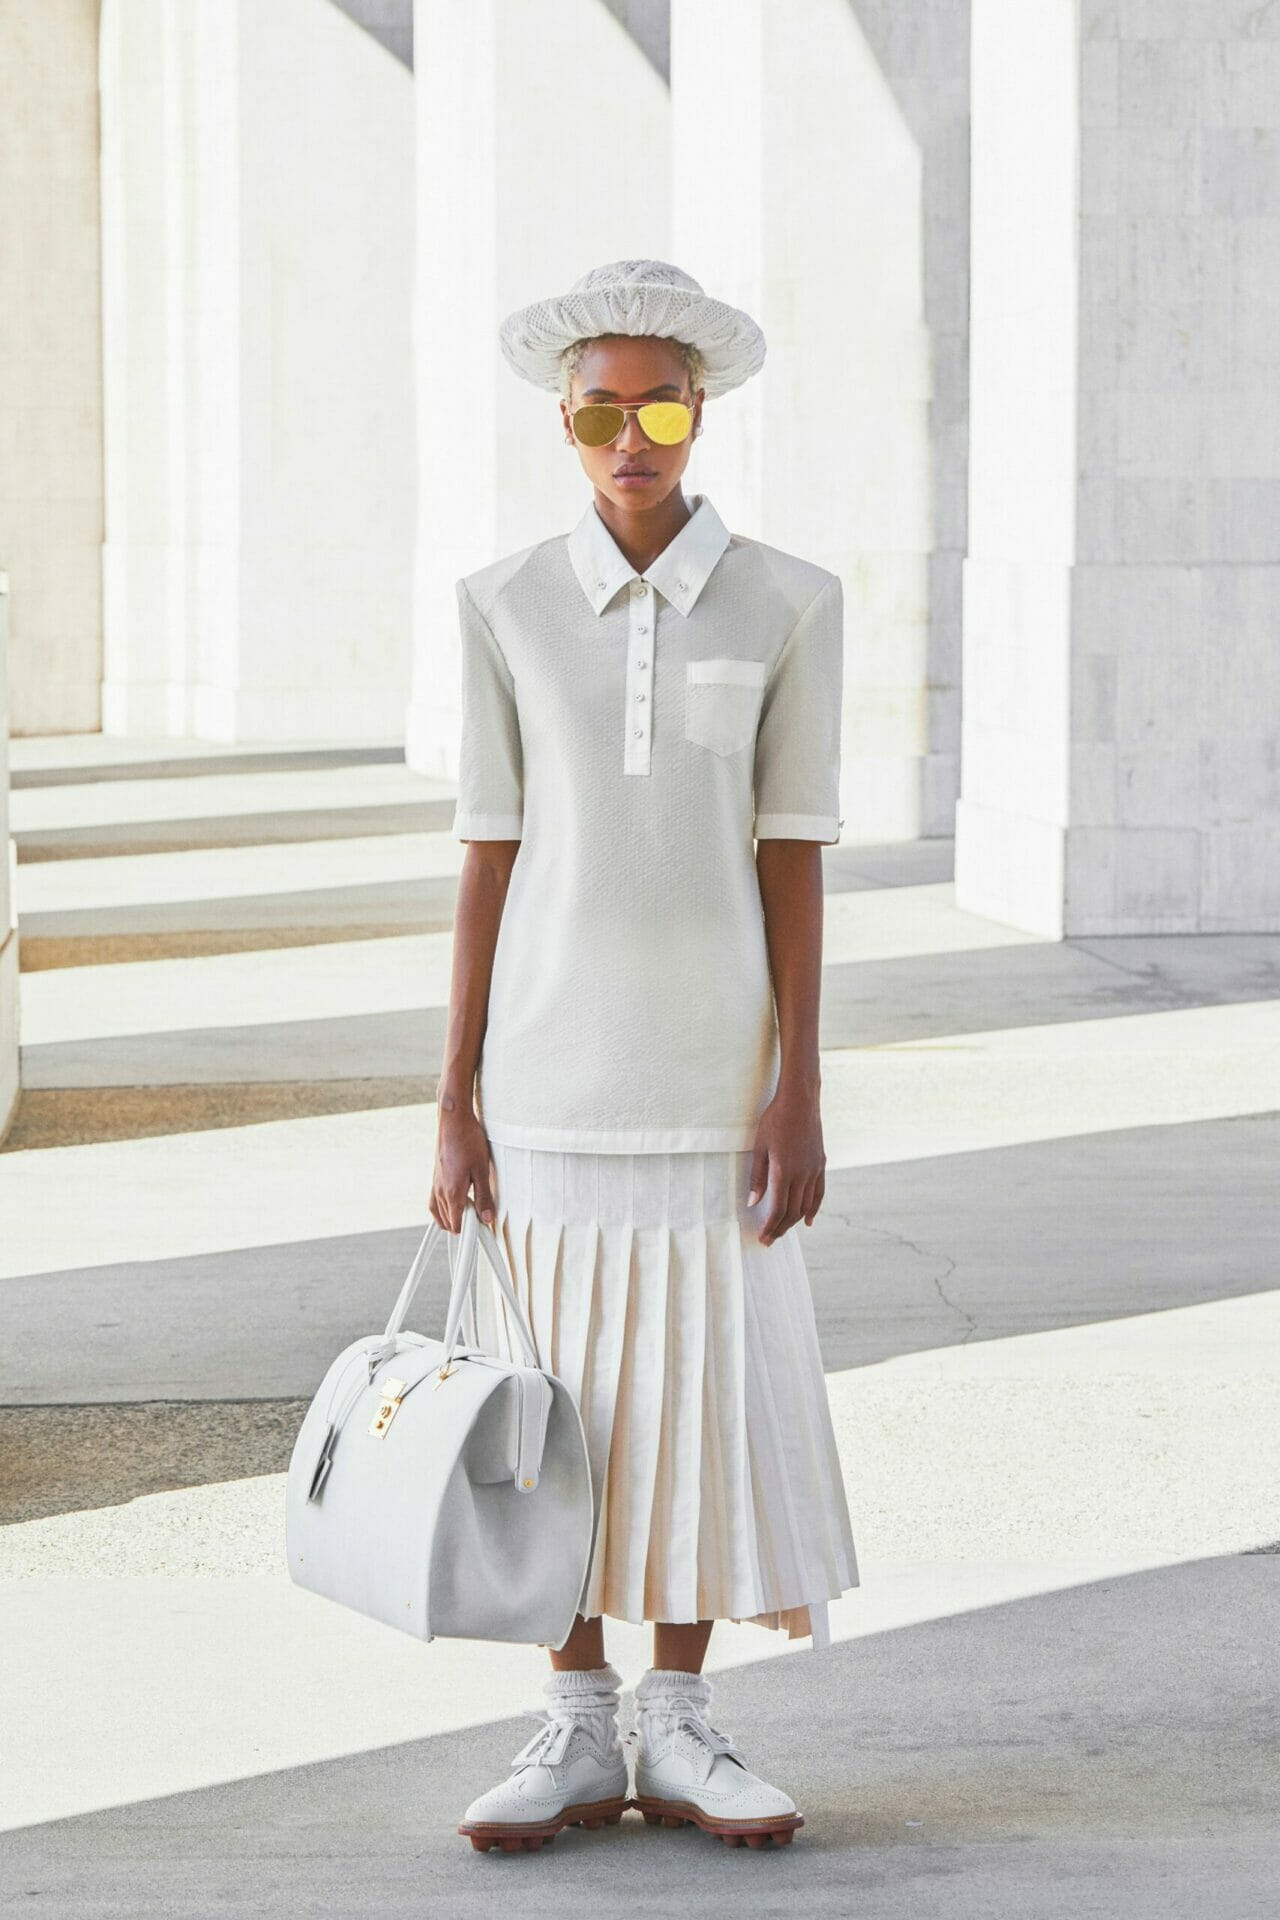 Thom Browne Spring Summer 2021. RUNWAY MAGAZINE ® Collections. RUNWAY NOW / RUNWAY NEW